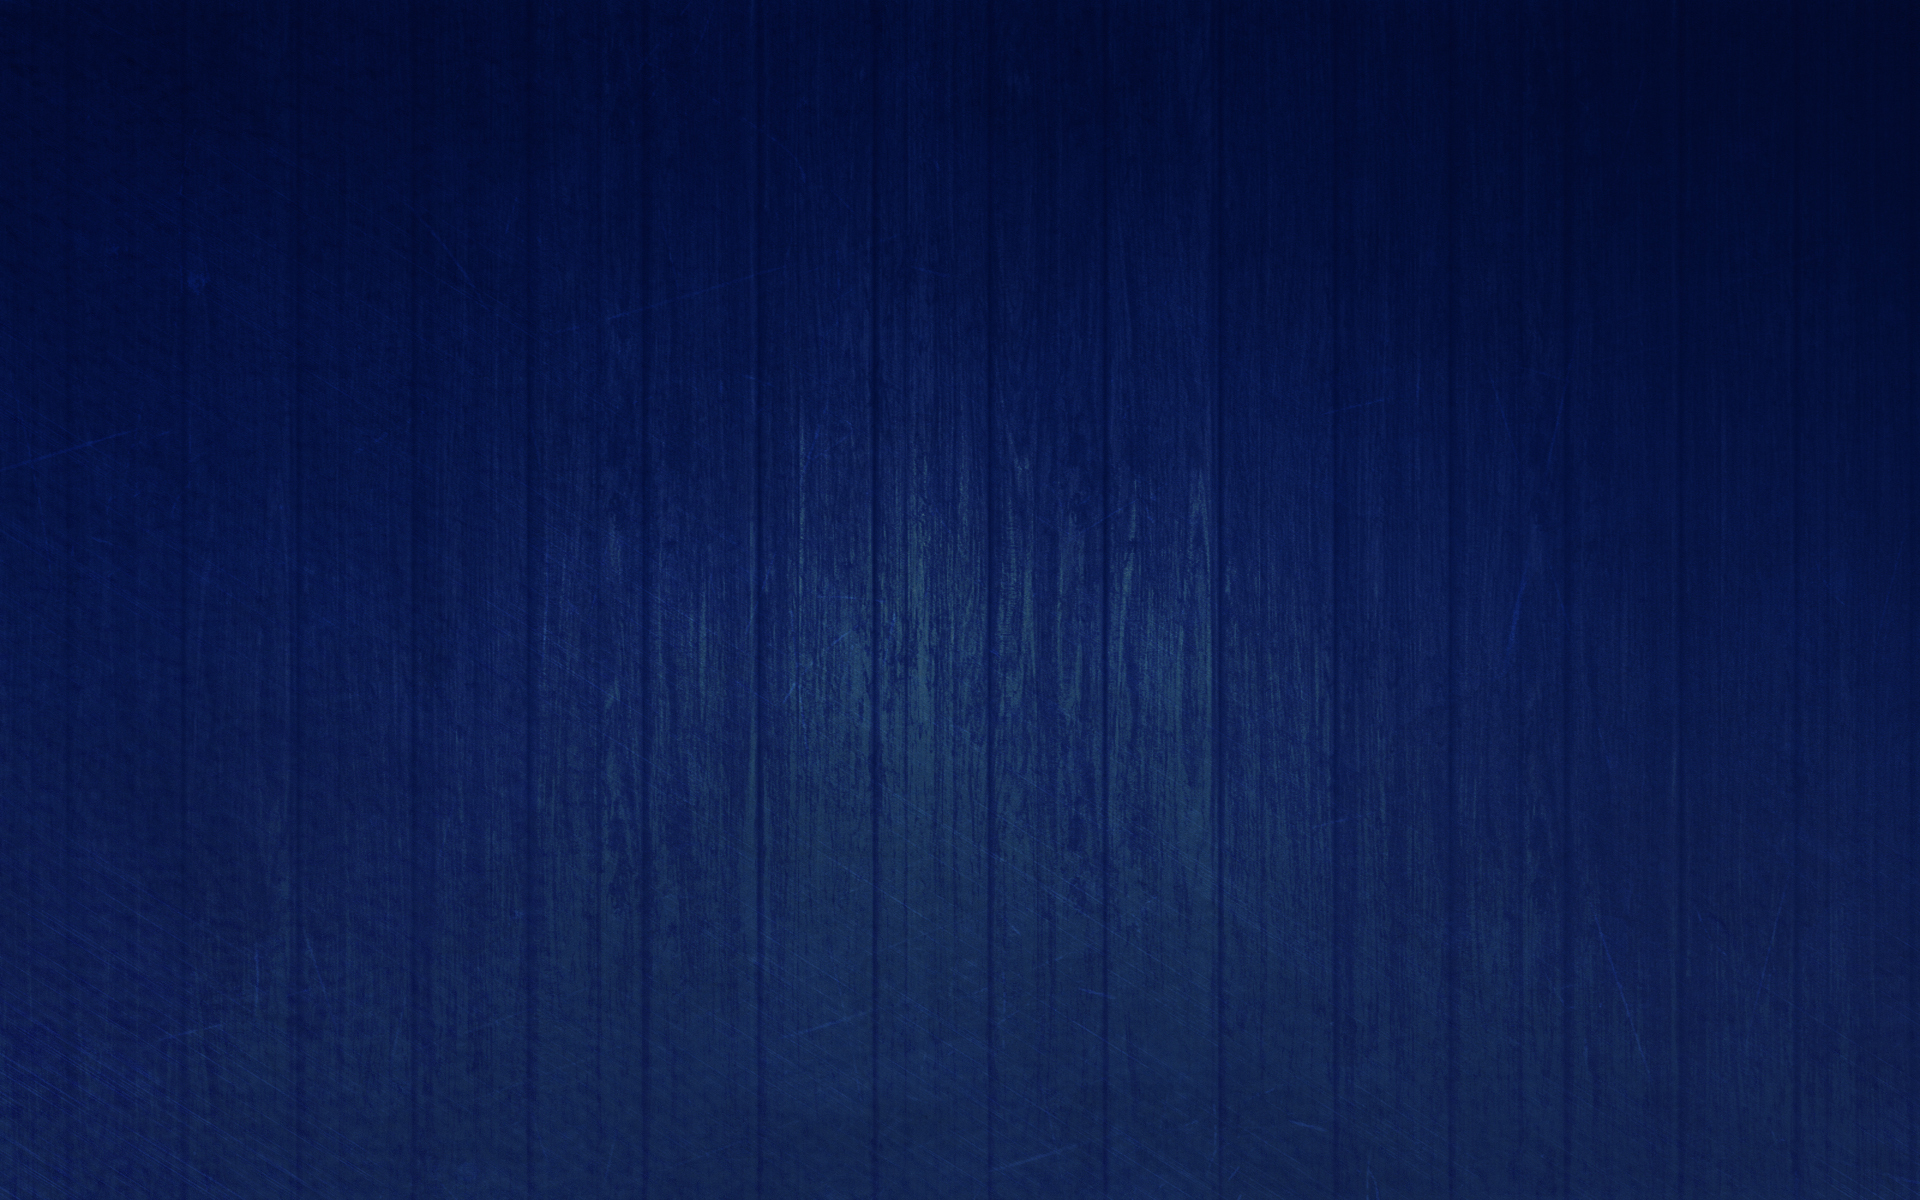 Dark blue wallpapers wallpapersafari for Dark blue wallpaper for walls